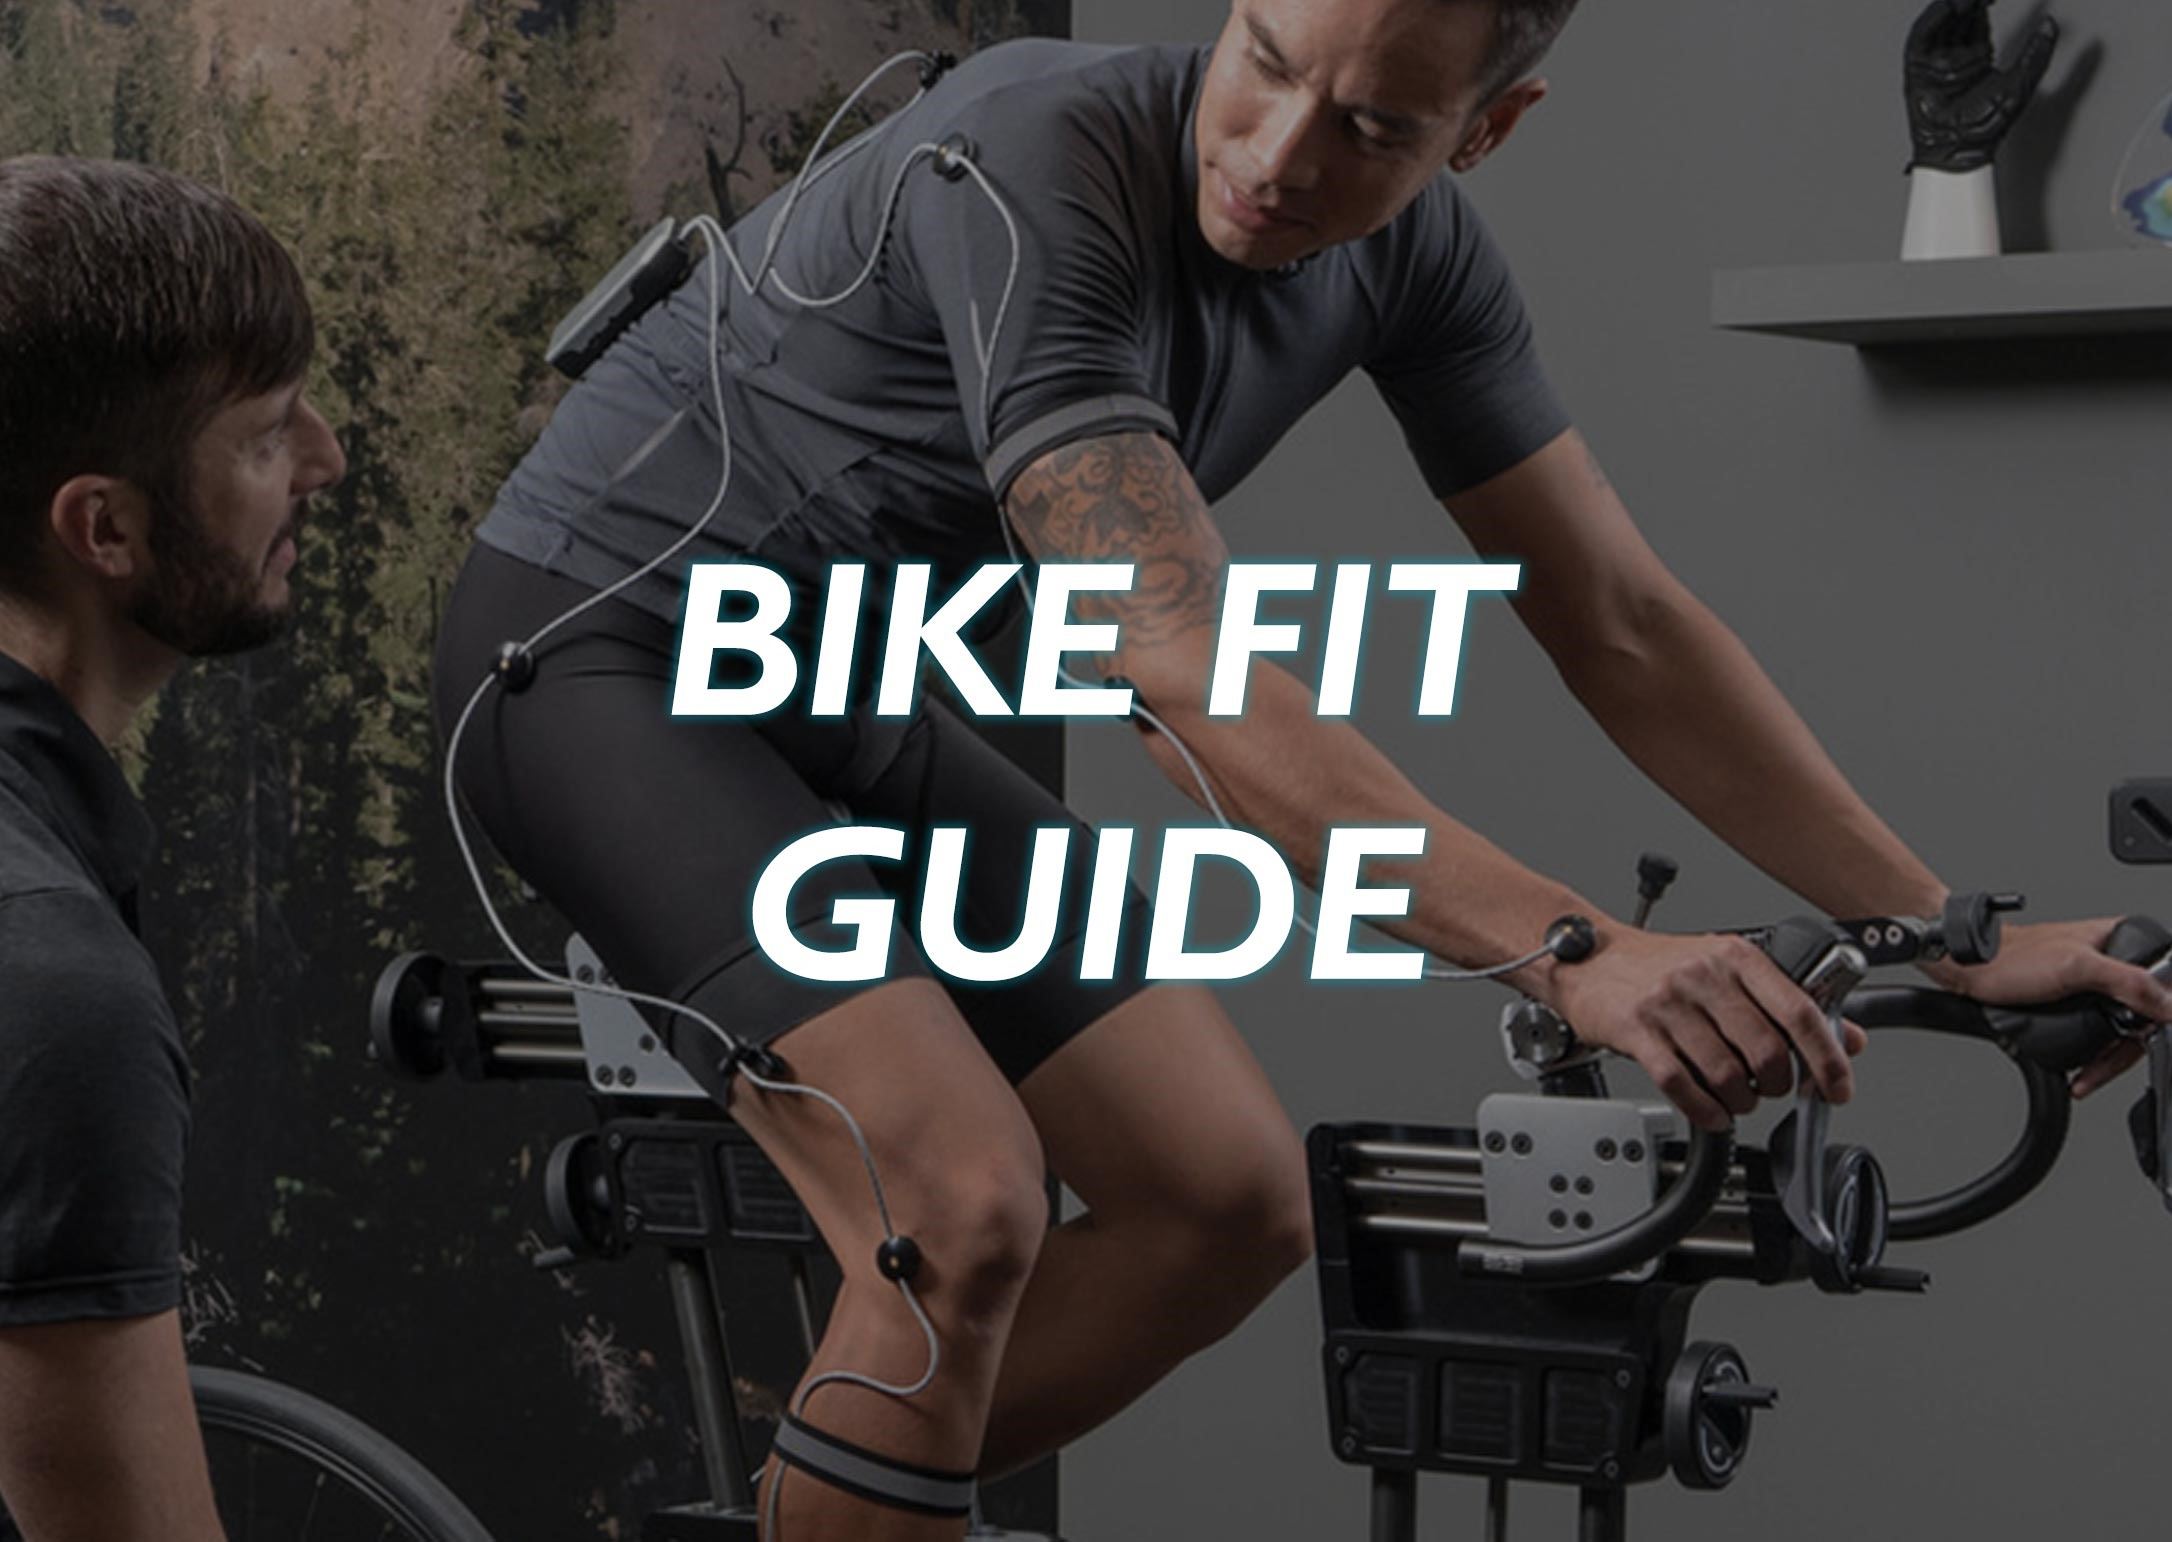 bike-fit-guide-tile